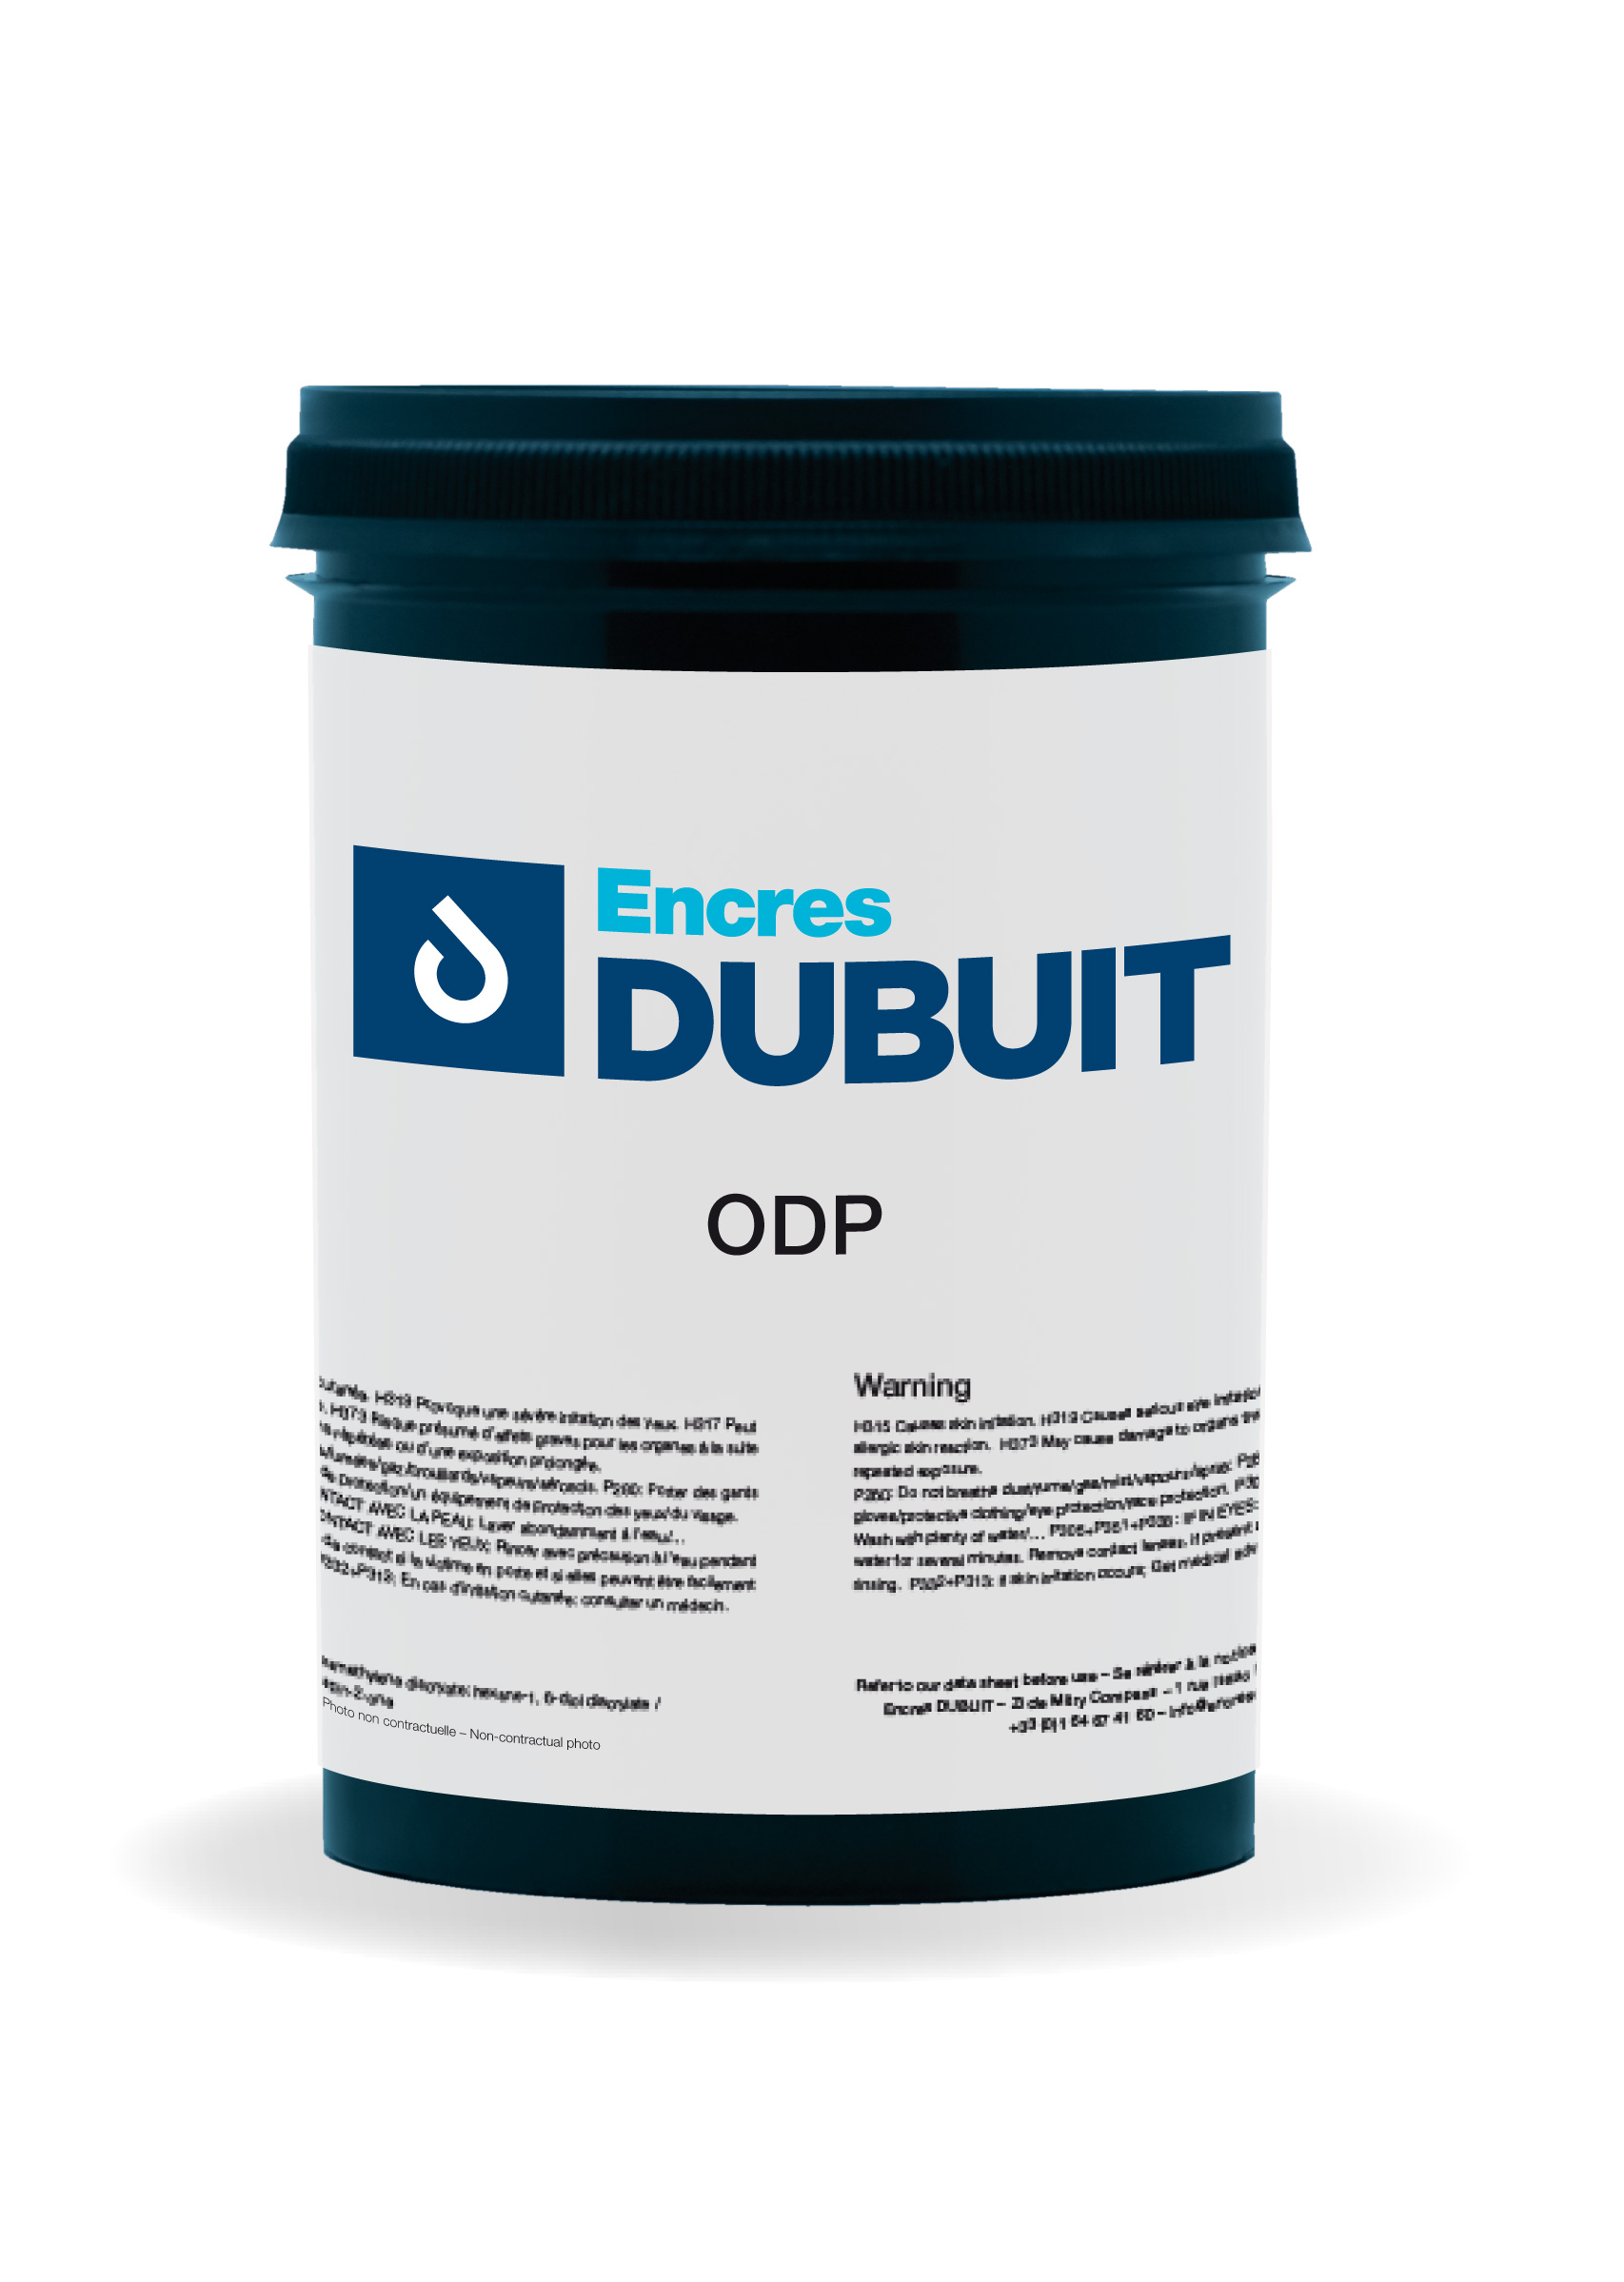 Serie ODP Encres DUBUIT UV Screen Printing Ink